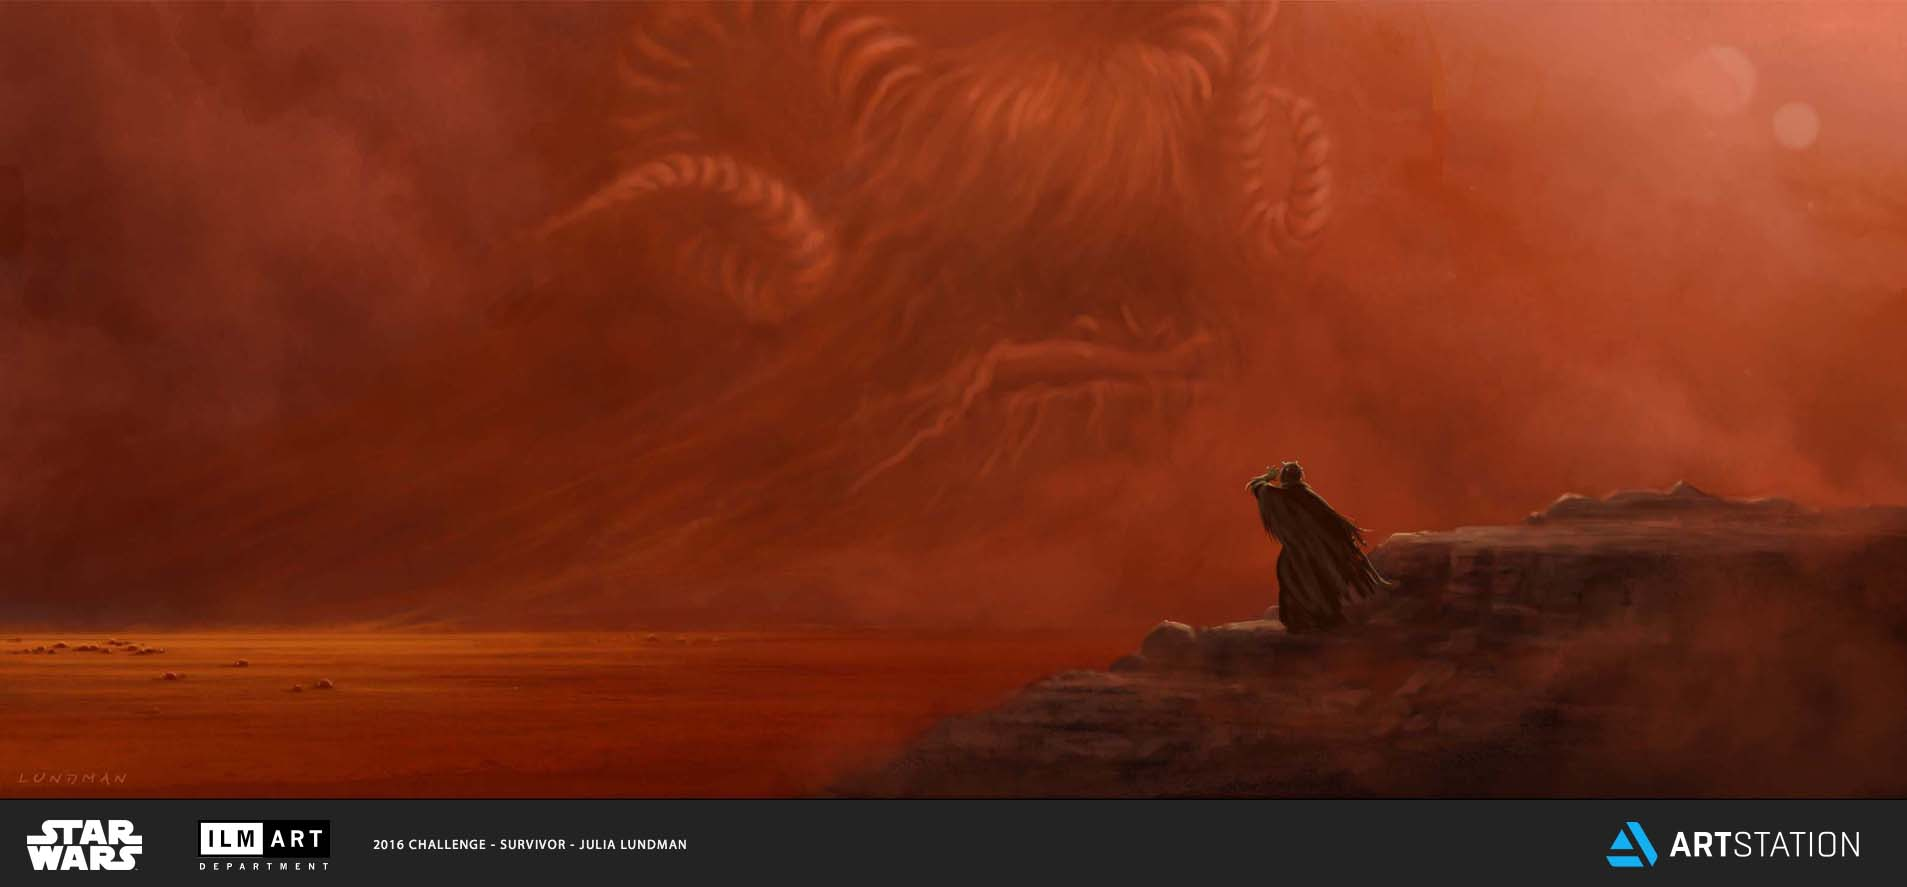 KEYFRAME 2: TUSKEN RAIDERS AND BANTHAS FORM A DEEP, LIFE LONG BOND. WHEN BROKEN BY DEATH, EITHER THE TUSKEN RAIDER OR BANTHA MUST GO OUT ALONE INTO THE DESERT TO LIVE OR DIE. THIS TUSKEN RAIDER EXPERIENCES A VISION OF HIS BANTHA SPIRIT, WHICH LEADS HIM TO A NEW, UNKNOWN HERD.